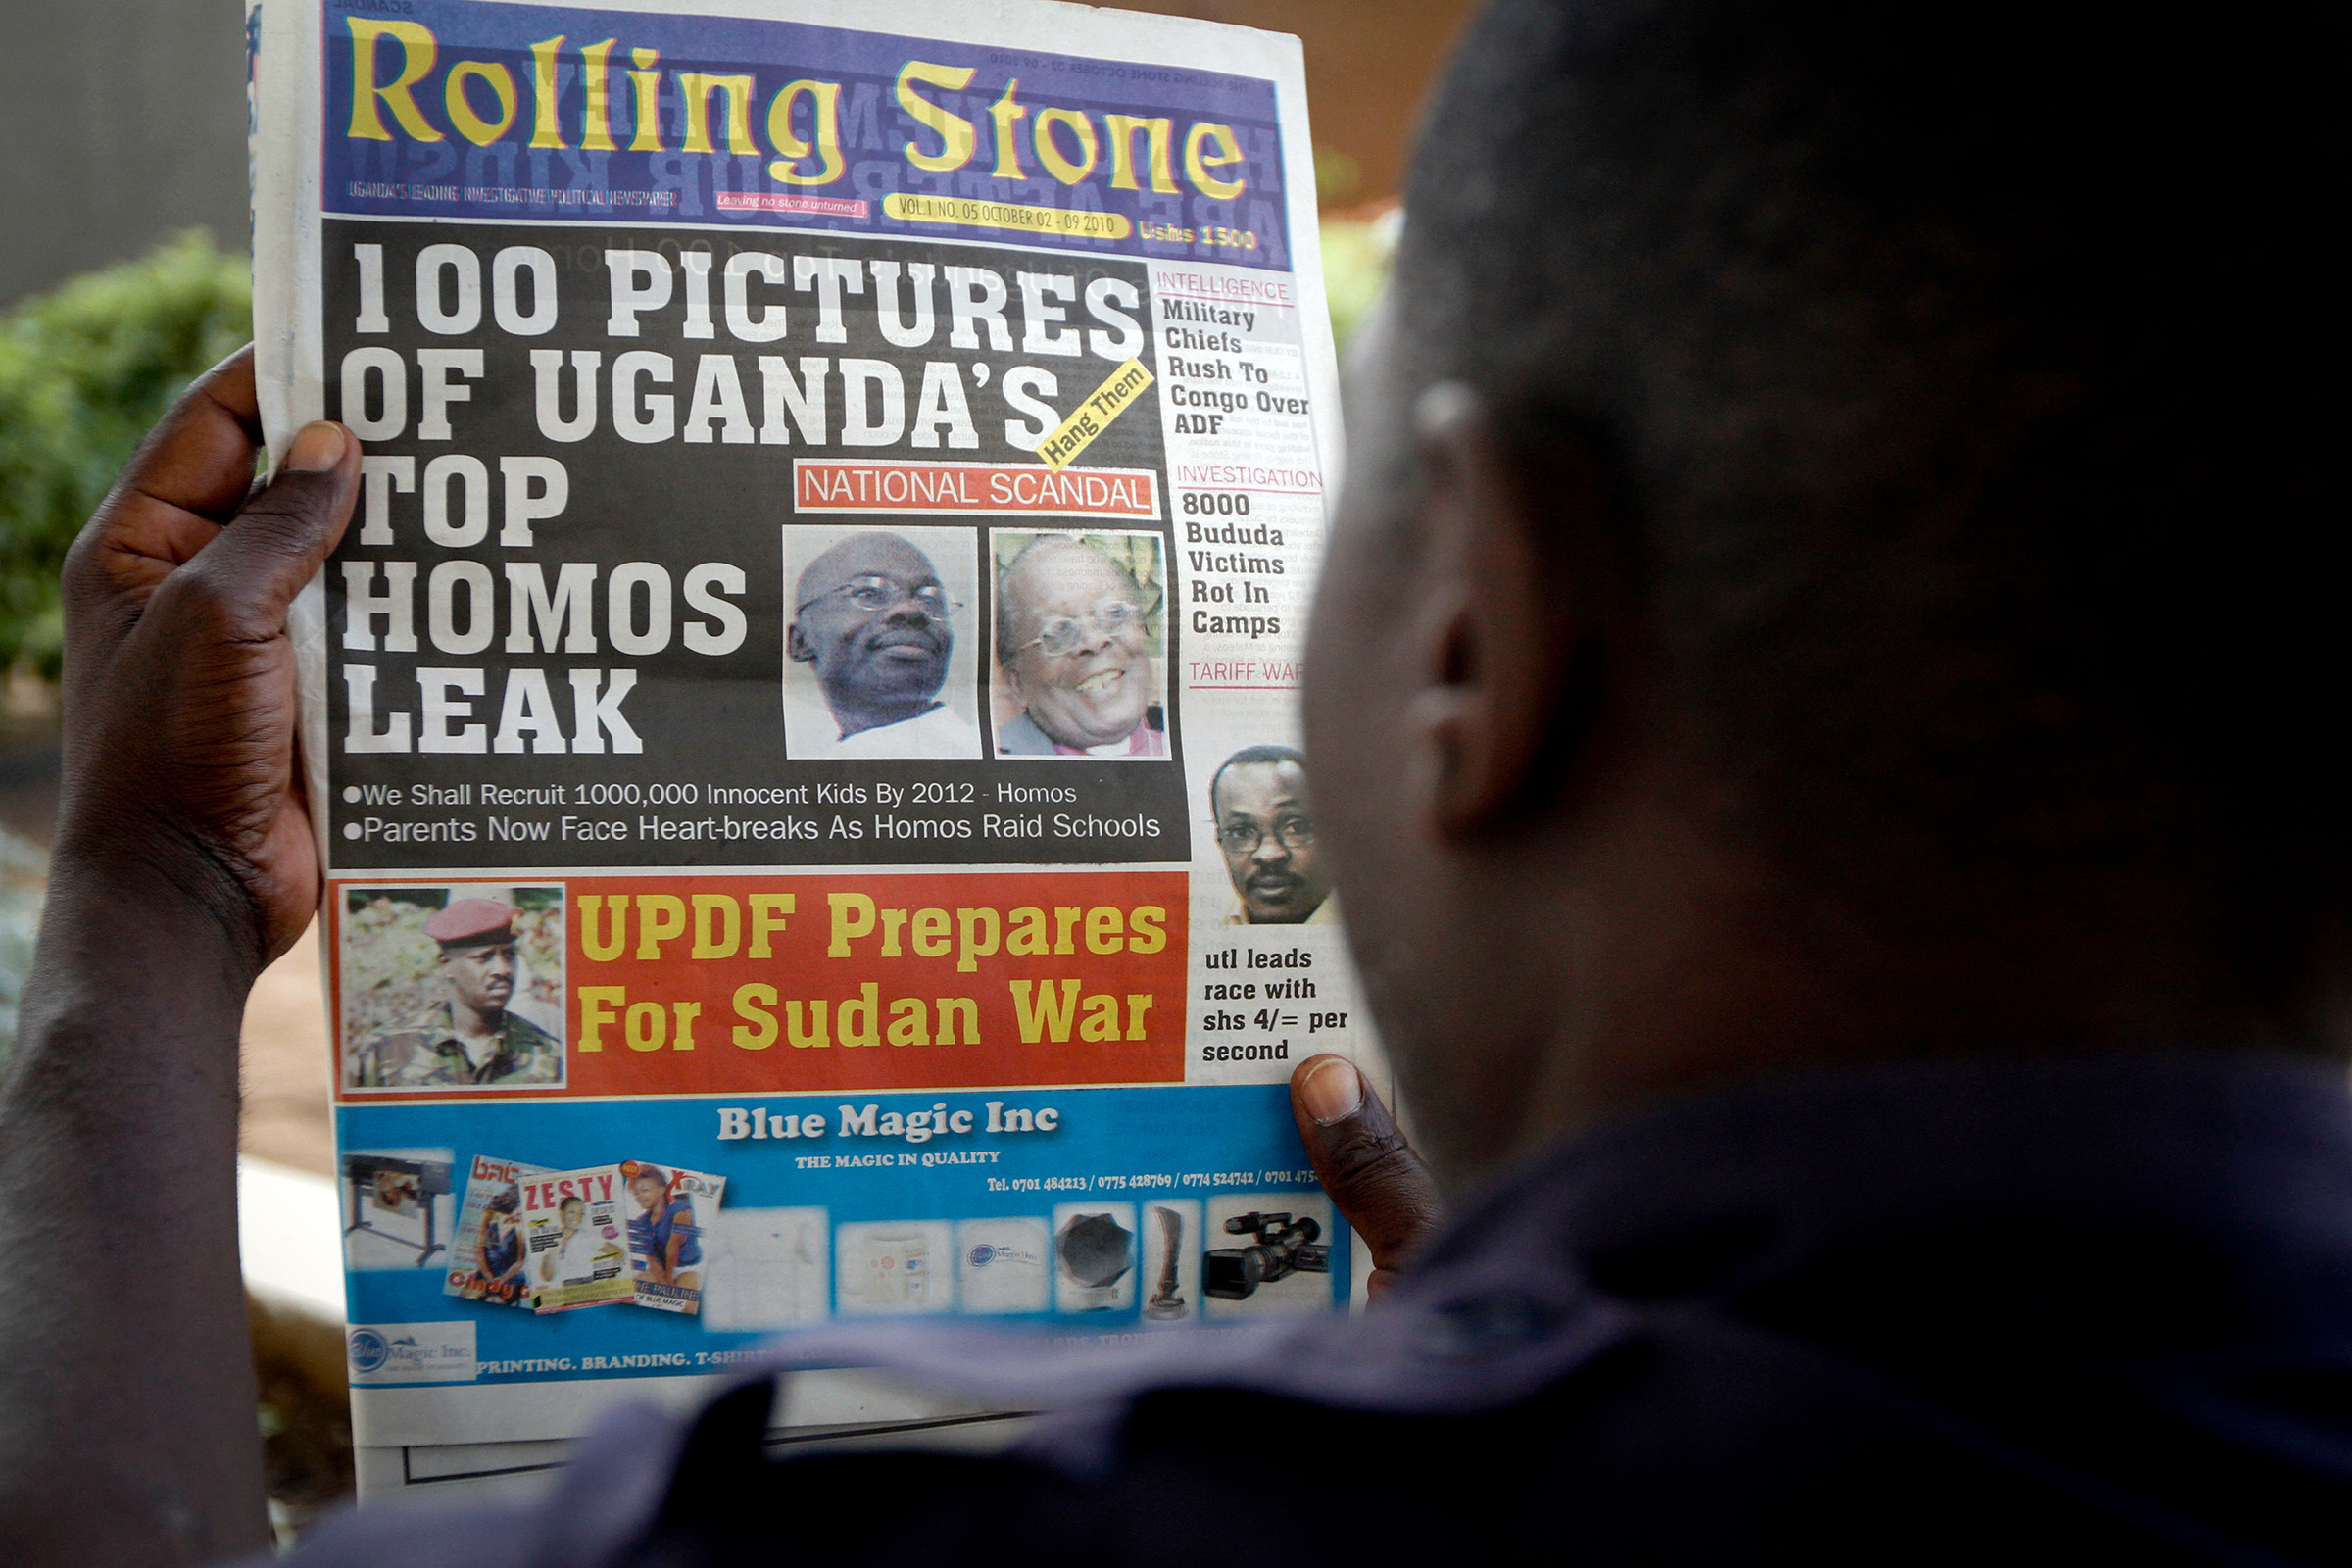 "A Ugandan man reads the headline of the Ugandan newspaper ""Rolling Stone"" in Kampala, Uganda., in which the papers reveals the identity of allegedly gay members of Ugandan society and calls for public punishment against those individuals. The ""Rolling Stone"" is a fairly new publication under the management of Giles Muhame, a Ugandan journalist..rights activitists say that at least four homosexuals have been attacked since a Ugandan newspaper published an article this month called ""100 Pictures of Uganda's Top Homos Leak _ Hang Them."" A year after a Ugandan legislator tried to introduce a bill that would have called for the death penalty for being gay, rights activists say homosexuals face a host of hostilityUganda Gays Attack, Kampala, Uganda"